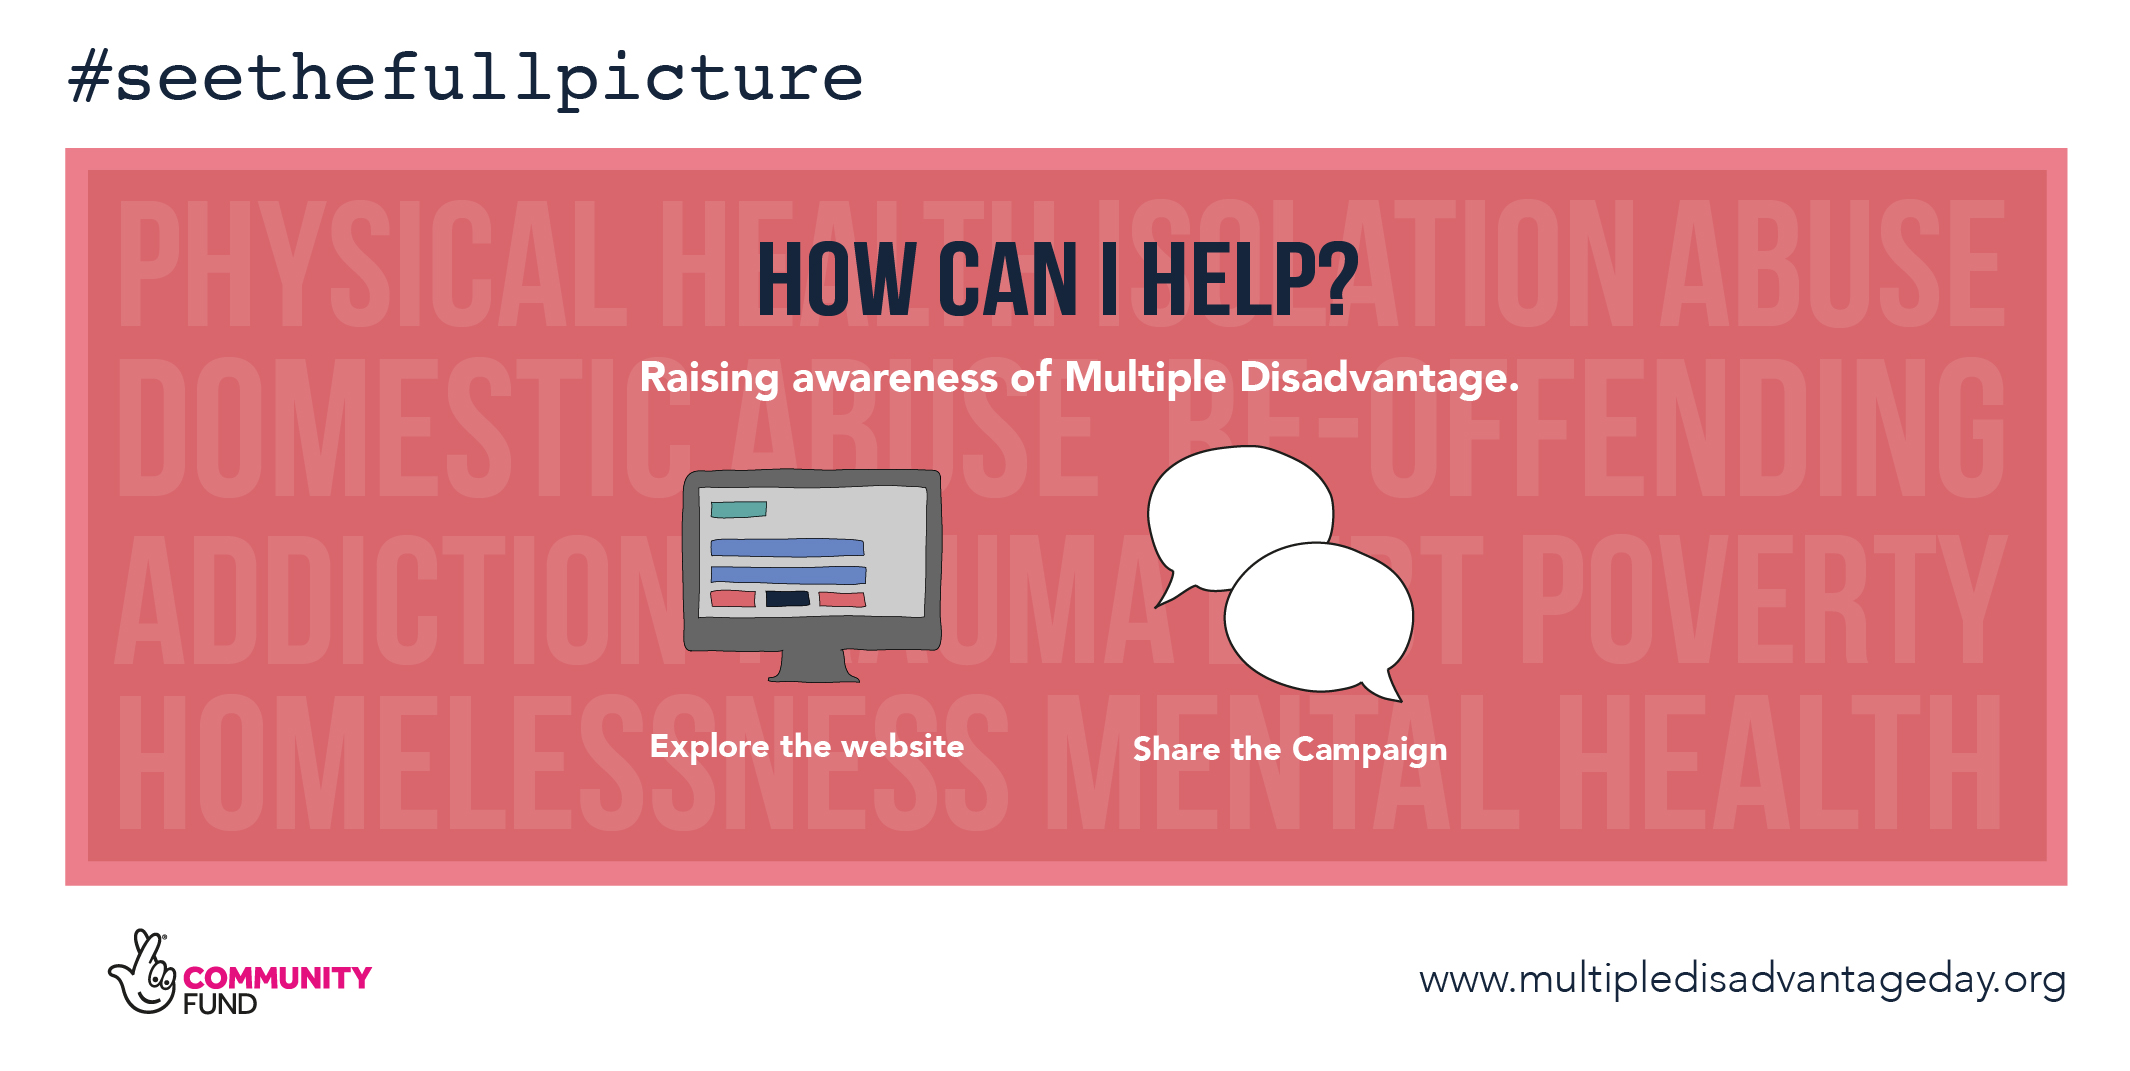 Multiple Disadvantage Day - #seethefullpicture - Campaign Graphics - How can I help? Raising Awareness